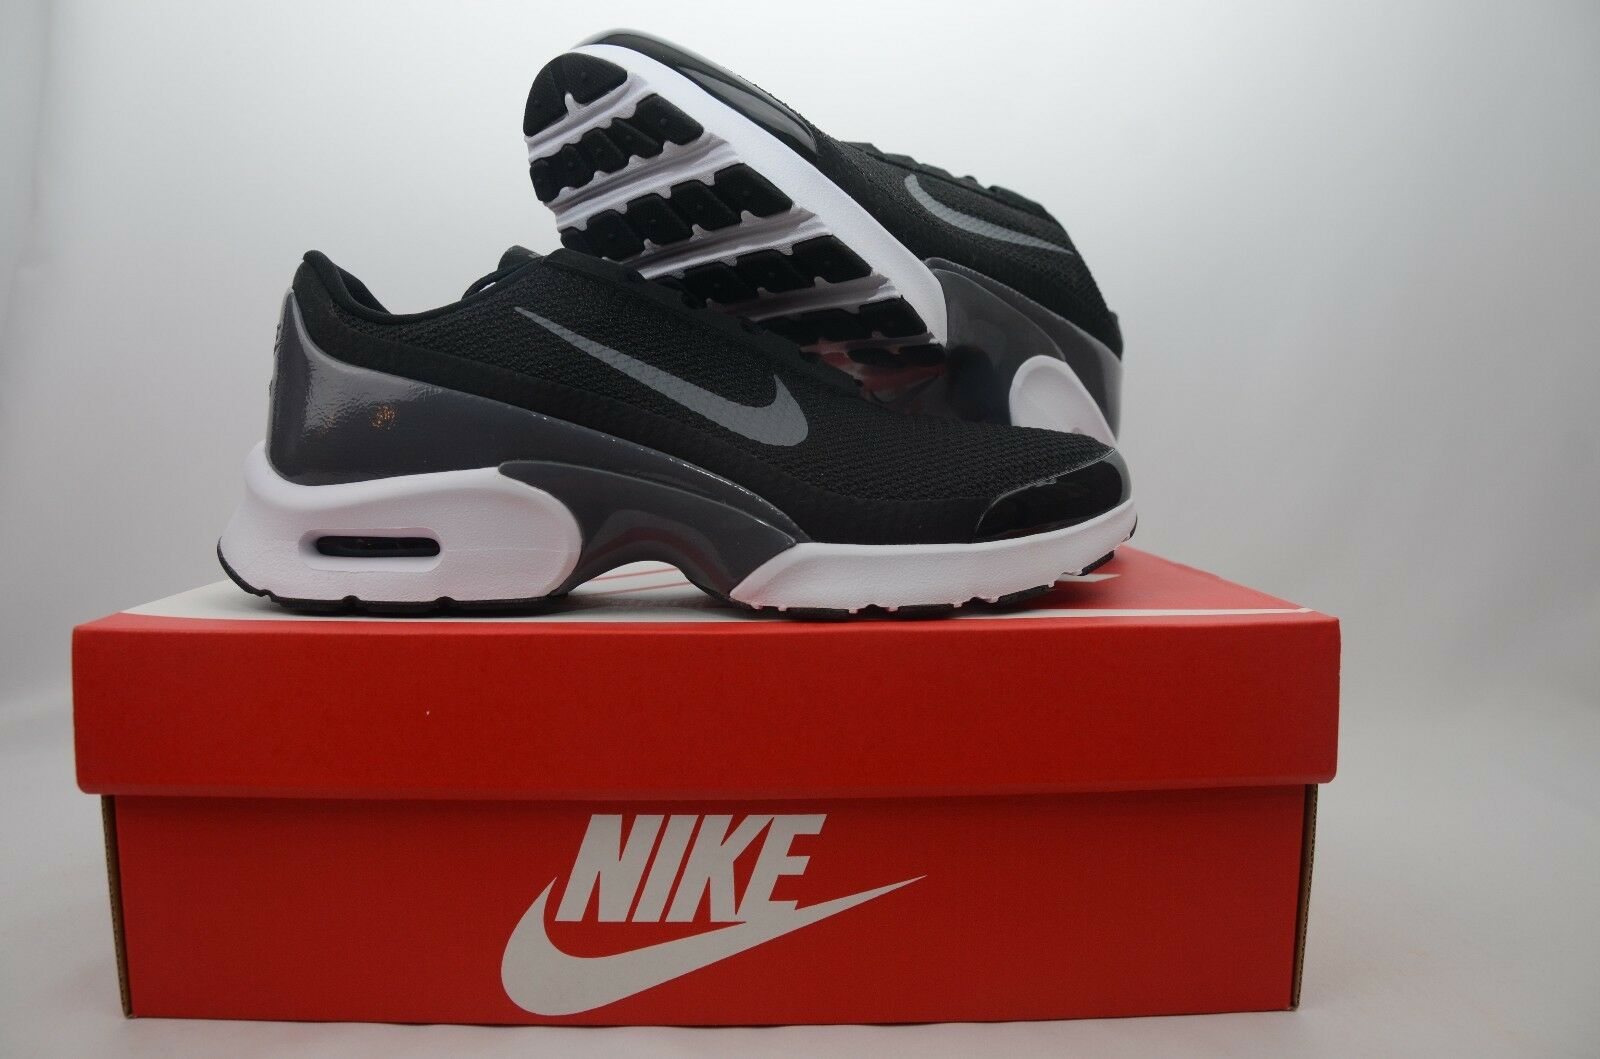 Nike Air Max Jewell Black Running Sneaker Women's Size Size Size 7-9 New in Box 896194 001 5ad5fa